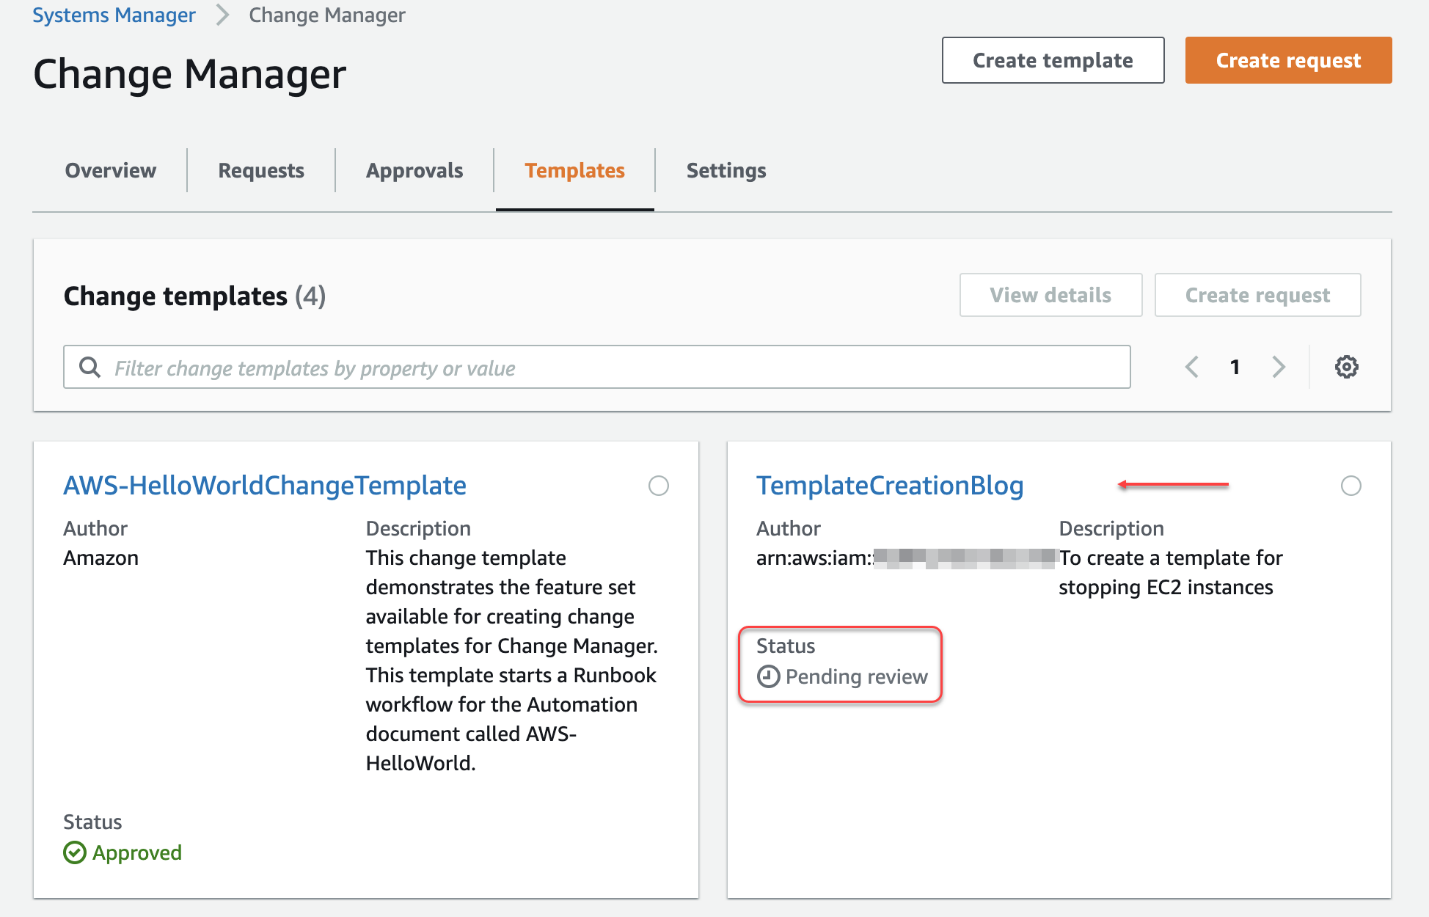 On the Templates tab, the TemplateCreationBlog template has a status of Pending review.